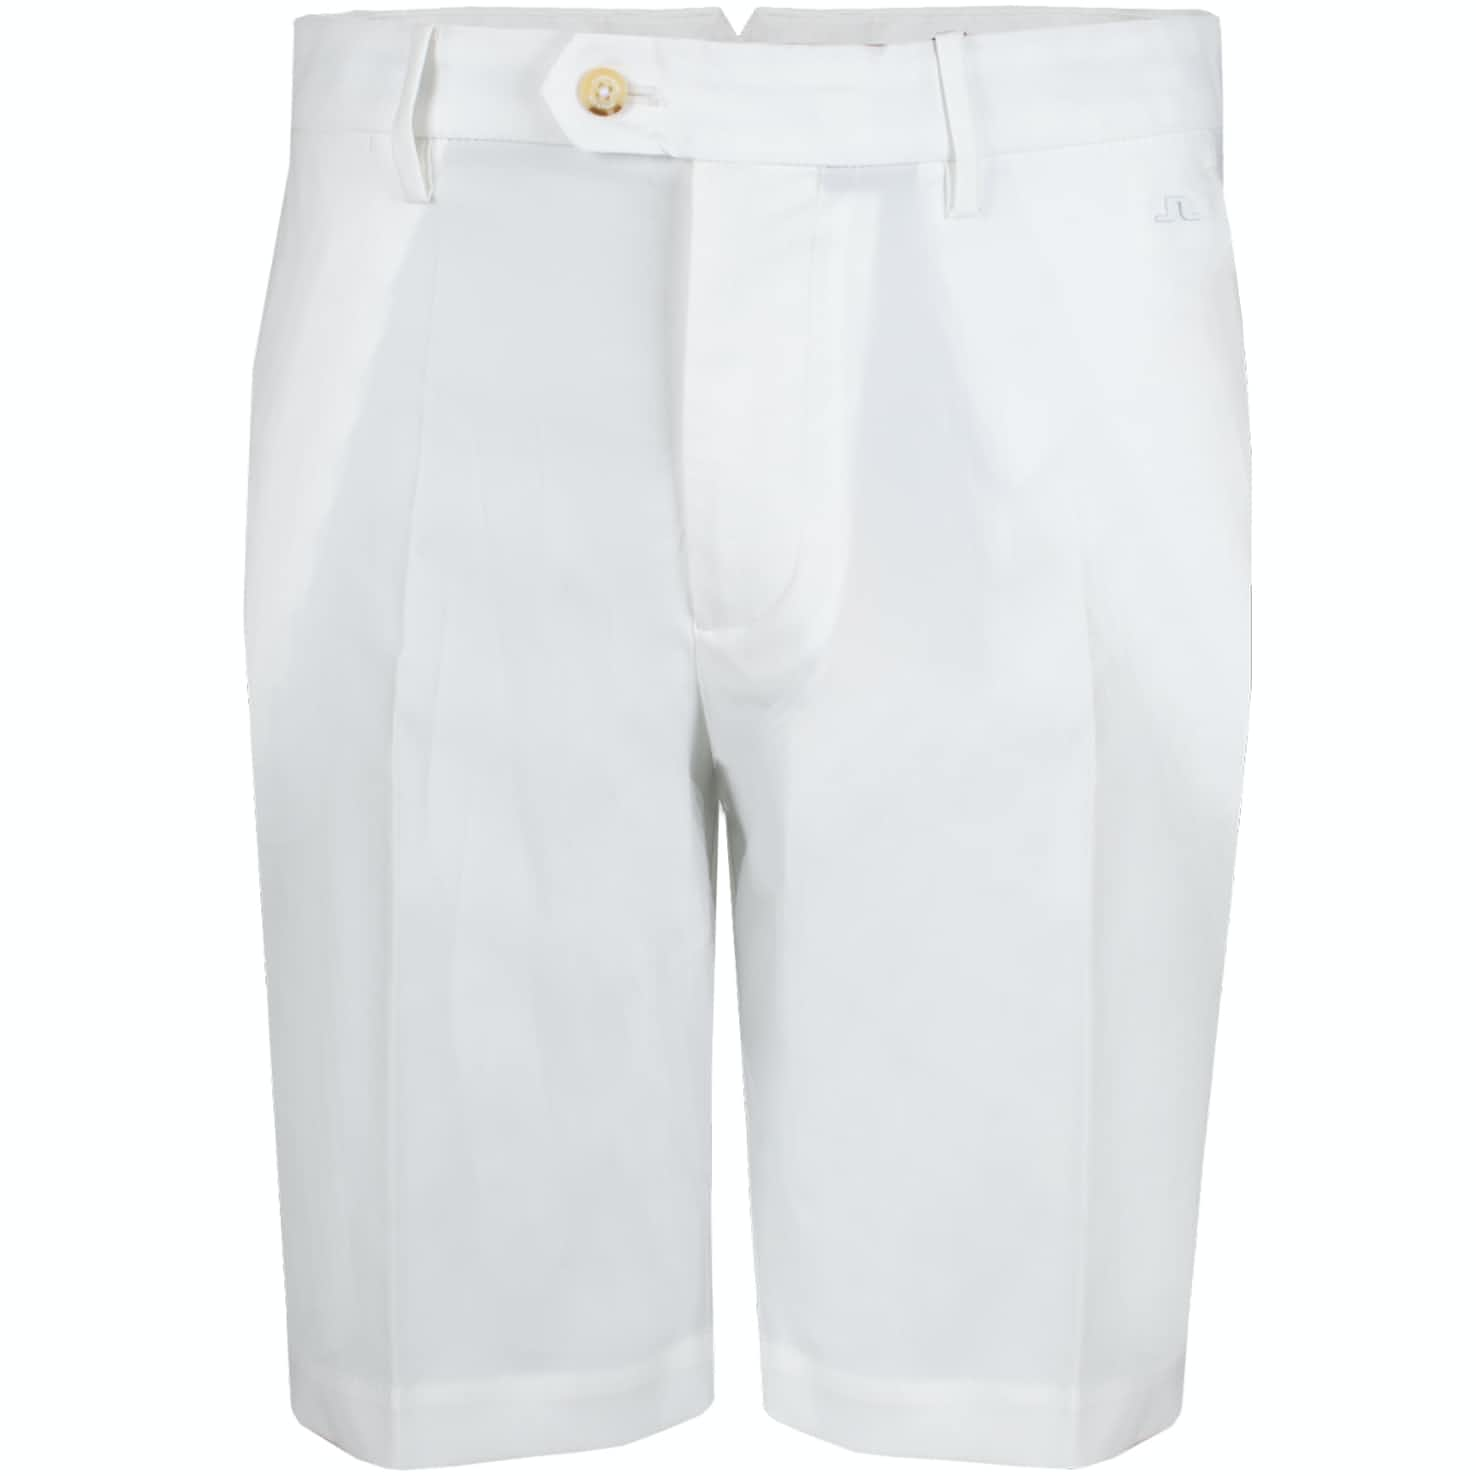 J.Lindeberg Palmer Schoeller 3xDry Shorts White - AW19